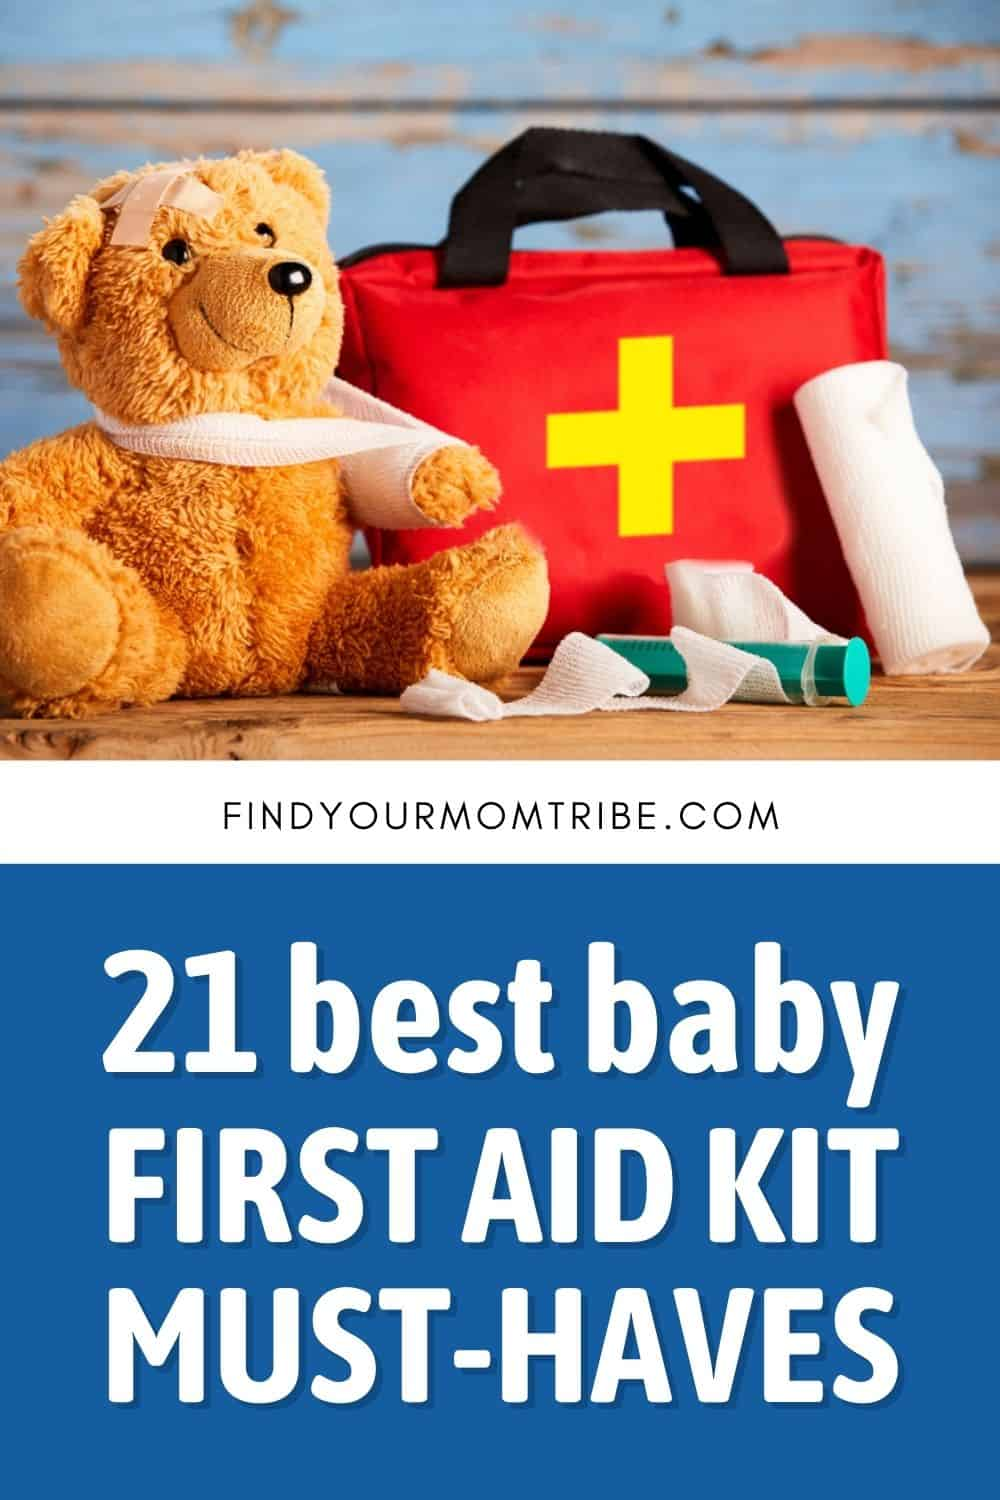 21 Best Baby First Aid Kit Must-Haves Pinterest